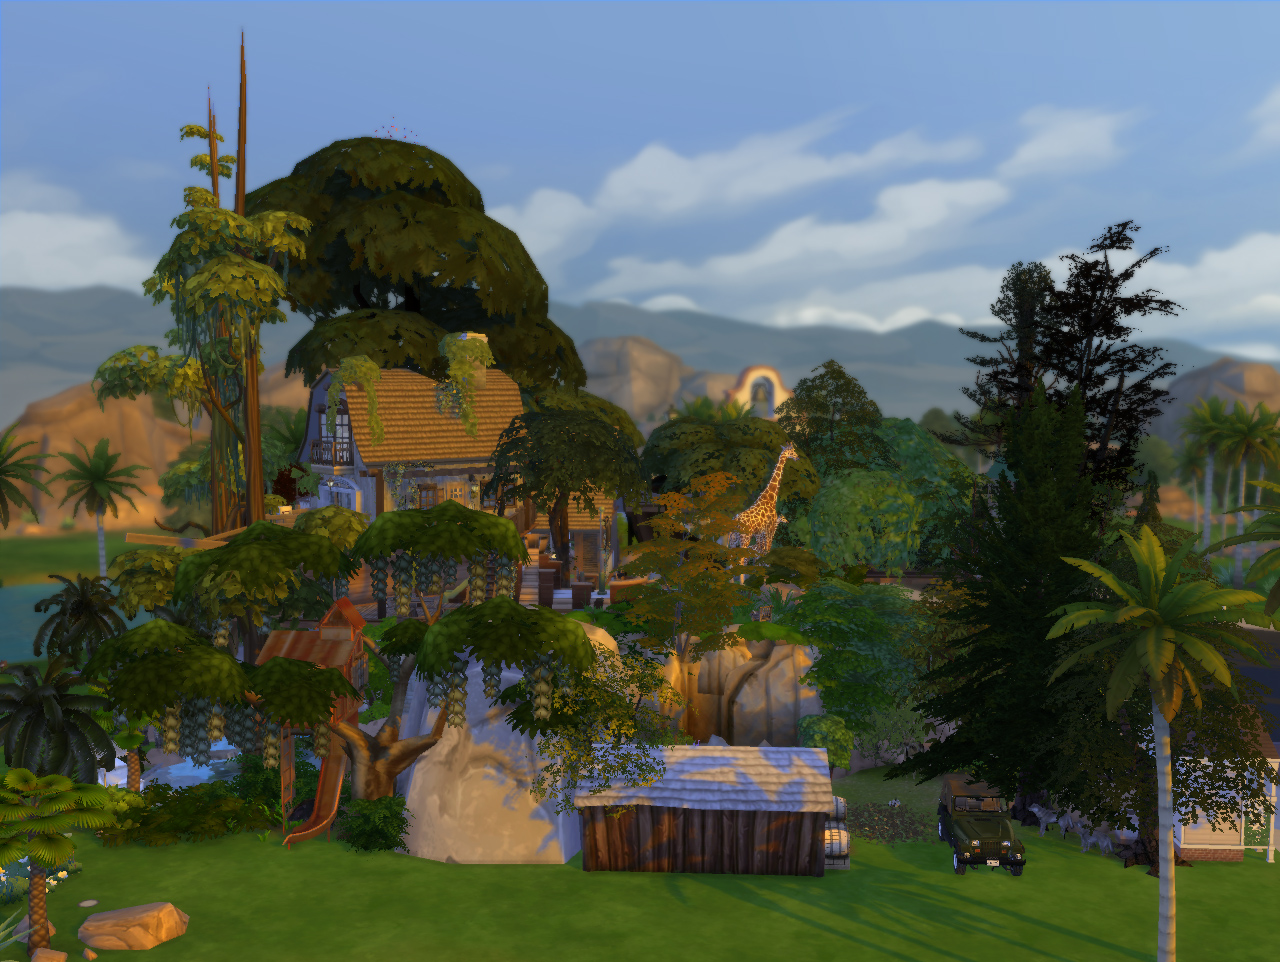 Mod The Sims - Jungle Adventure (All-in-one lot)